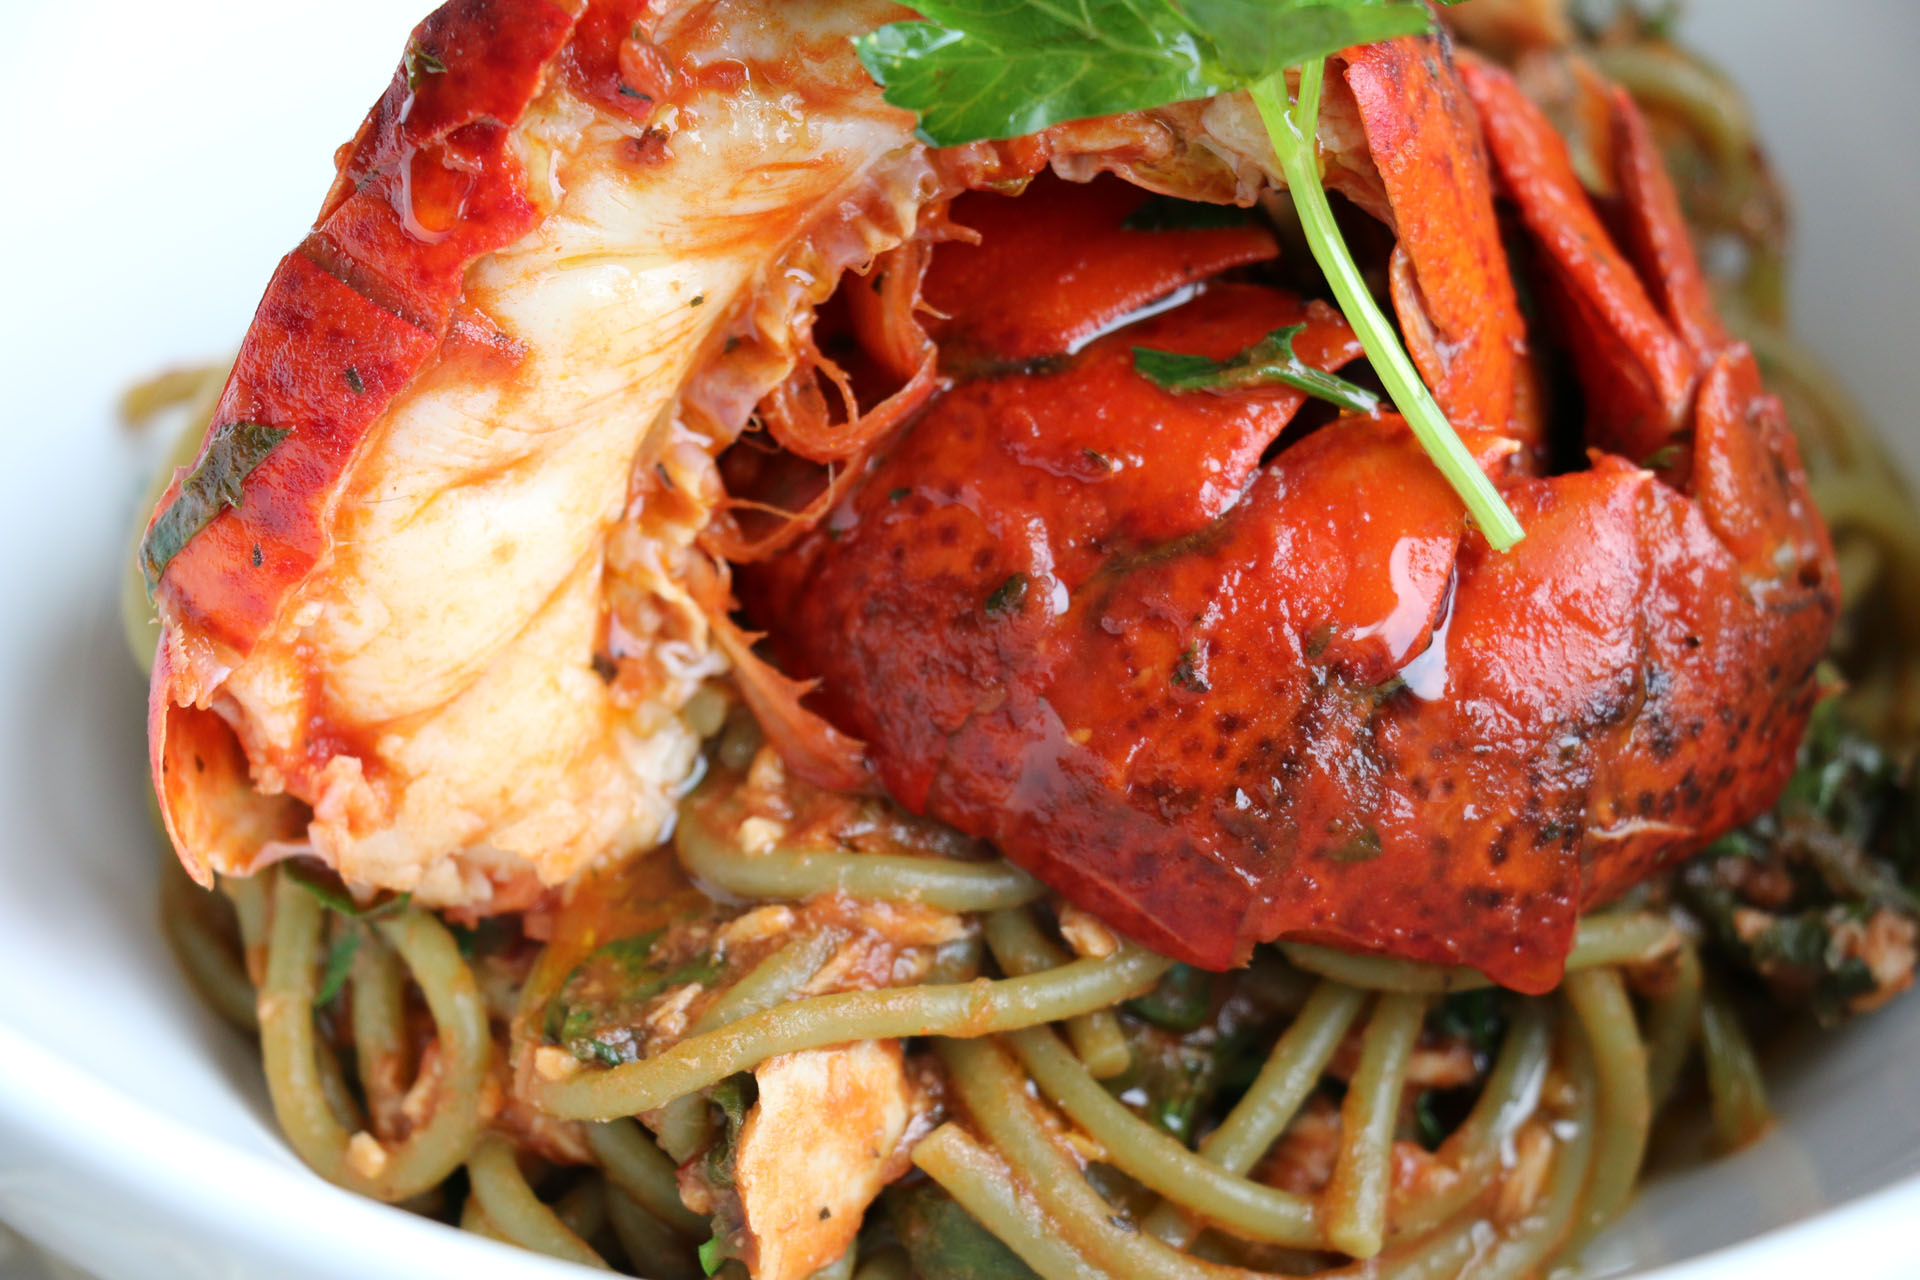 ... Spaghetti with Lobster and Spicy Tuna Tomato Sauce - Fangalicious